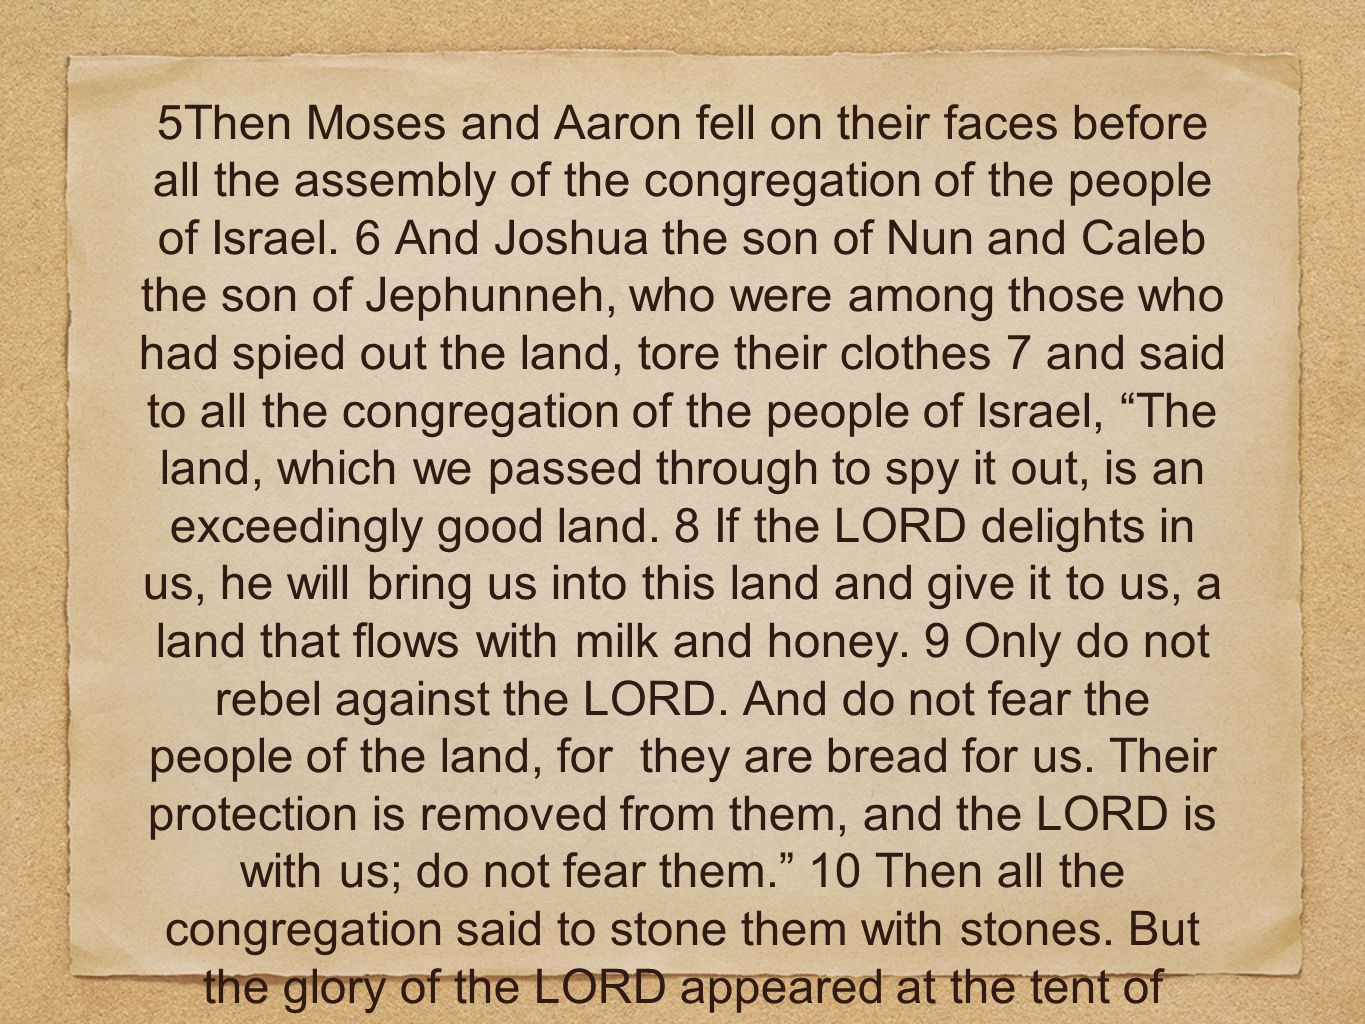 5Then Moses and Aaron fell on their faces before all the assembly of the congregation of the people of Israel.